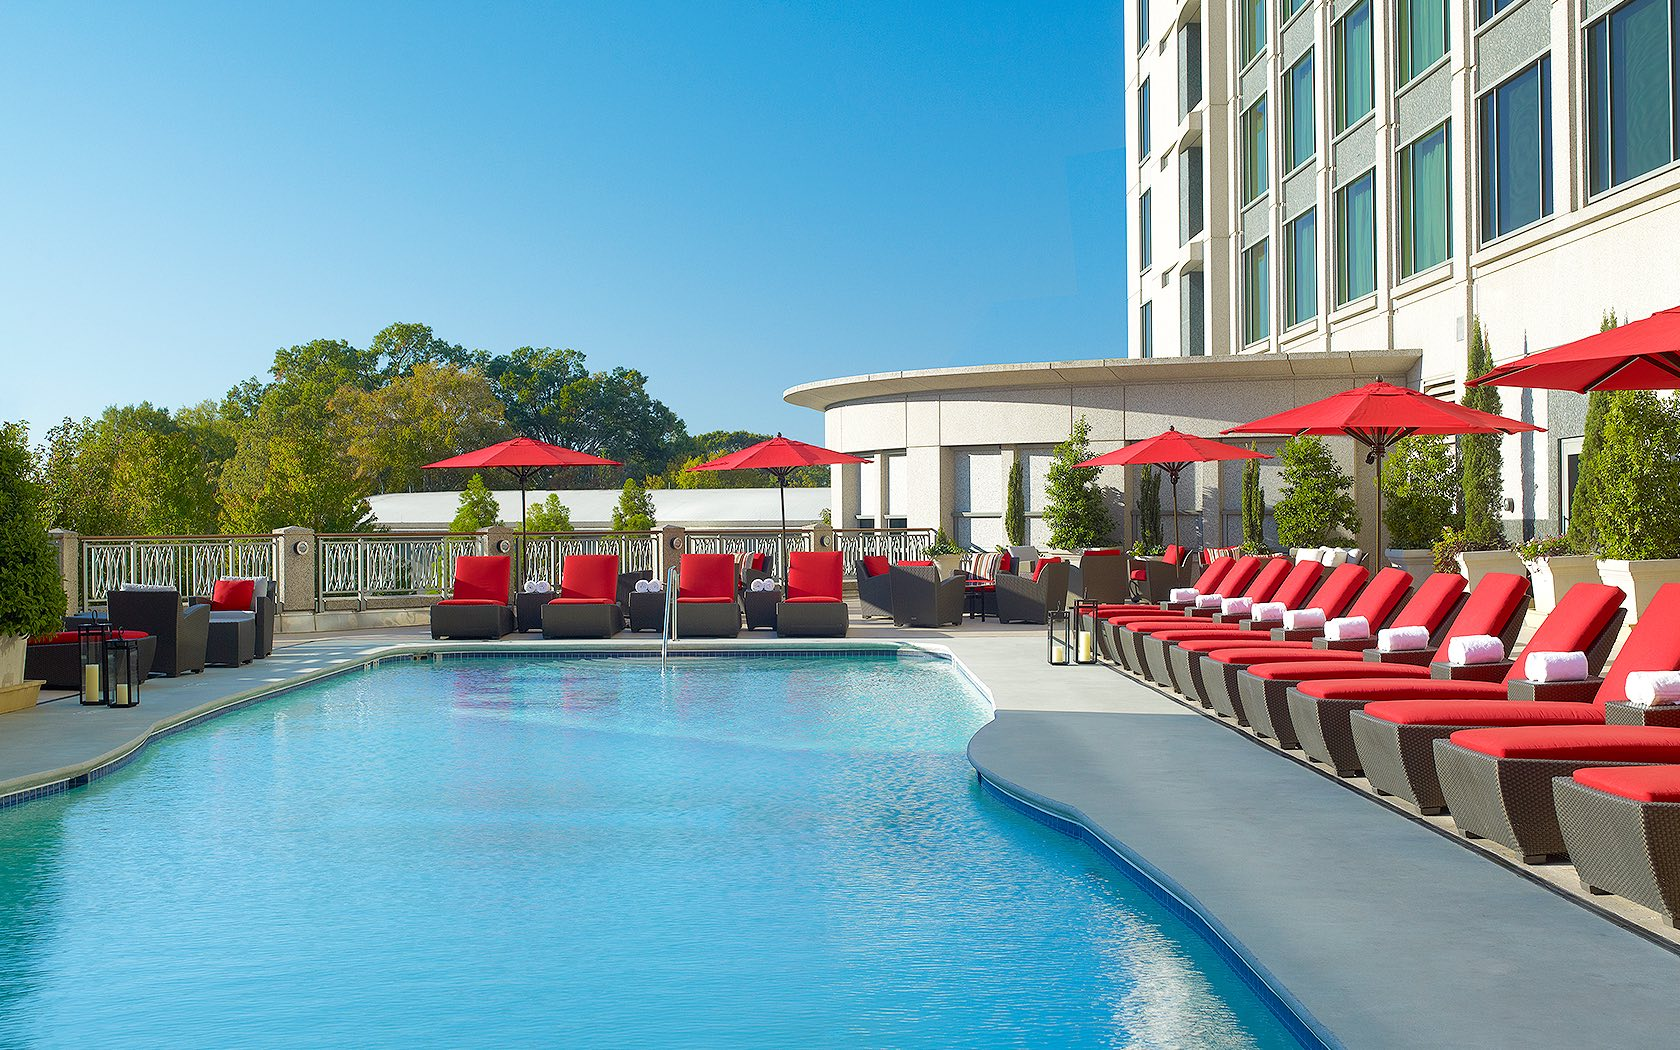 view of pool patio area with red chaise lounge chairs and crystal blue pool water